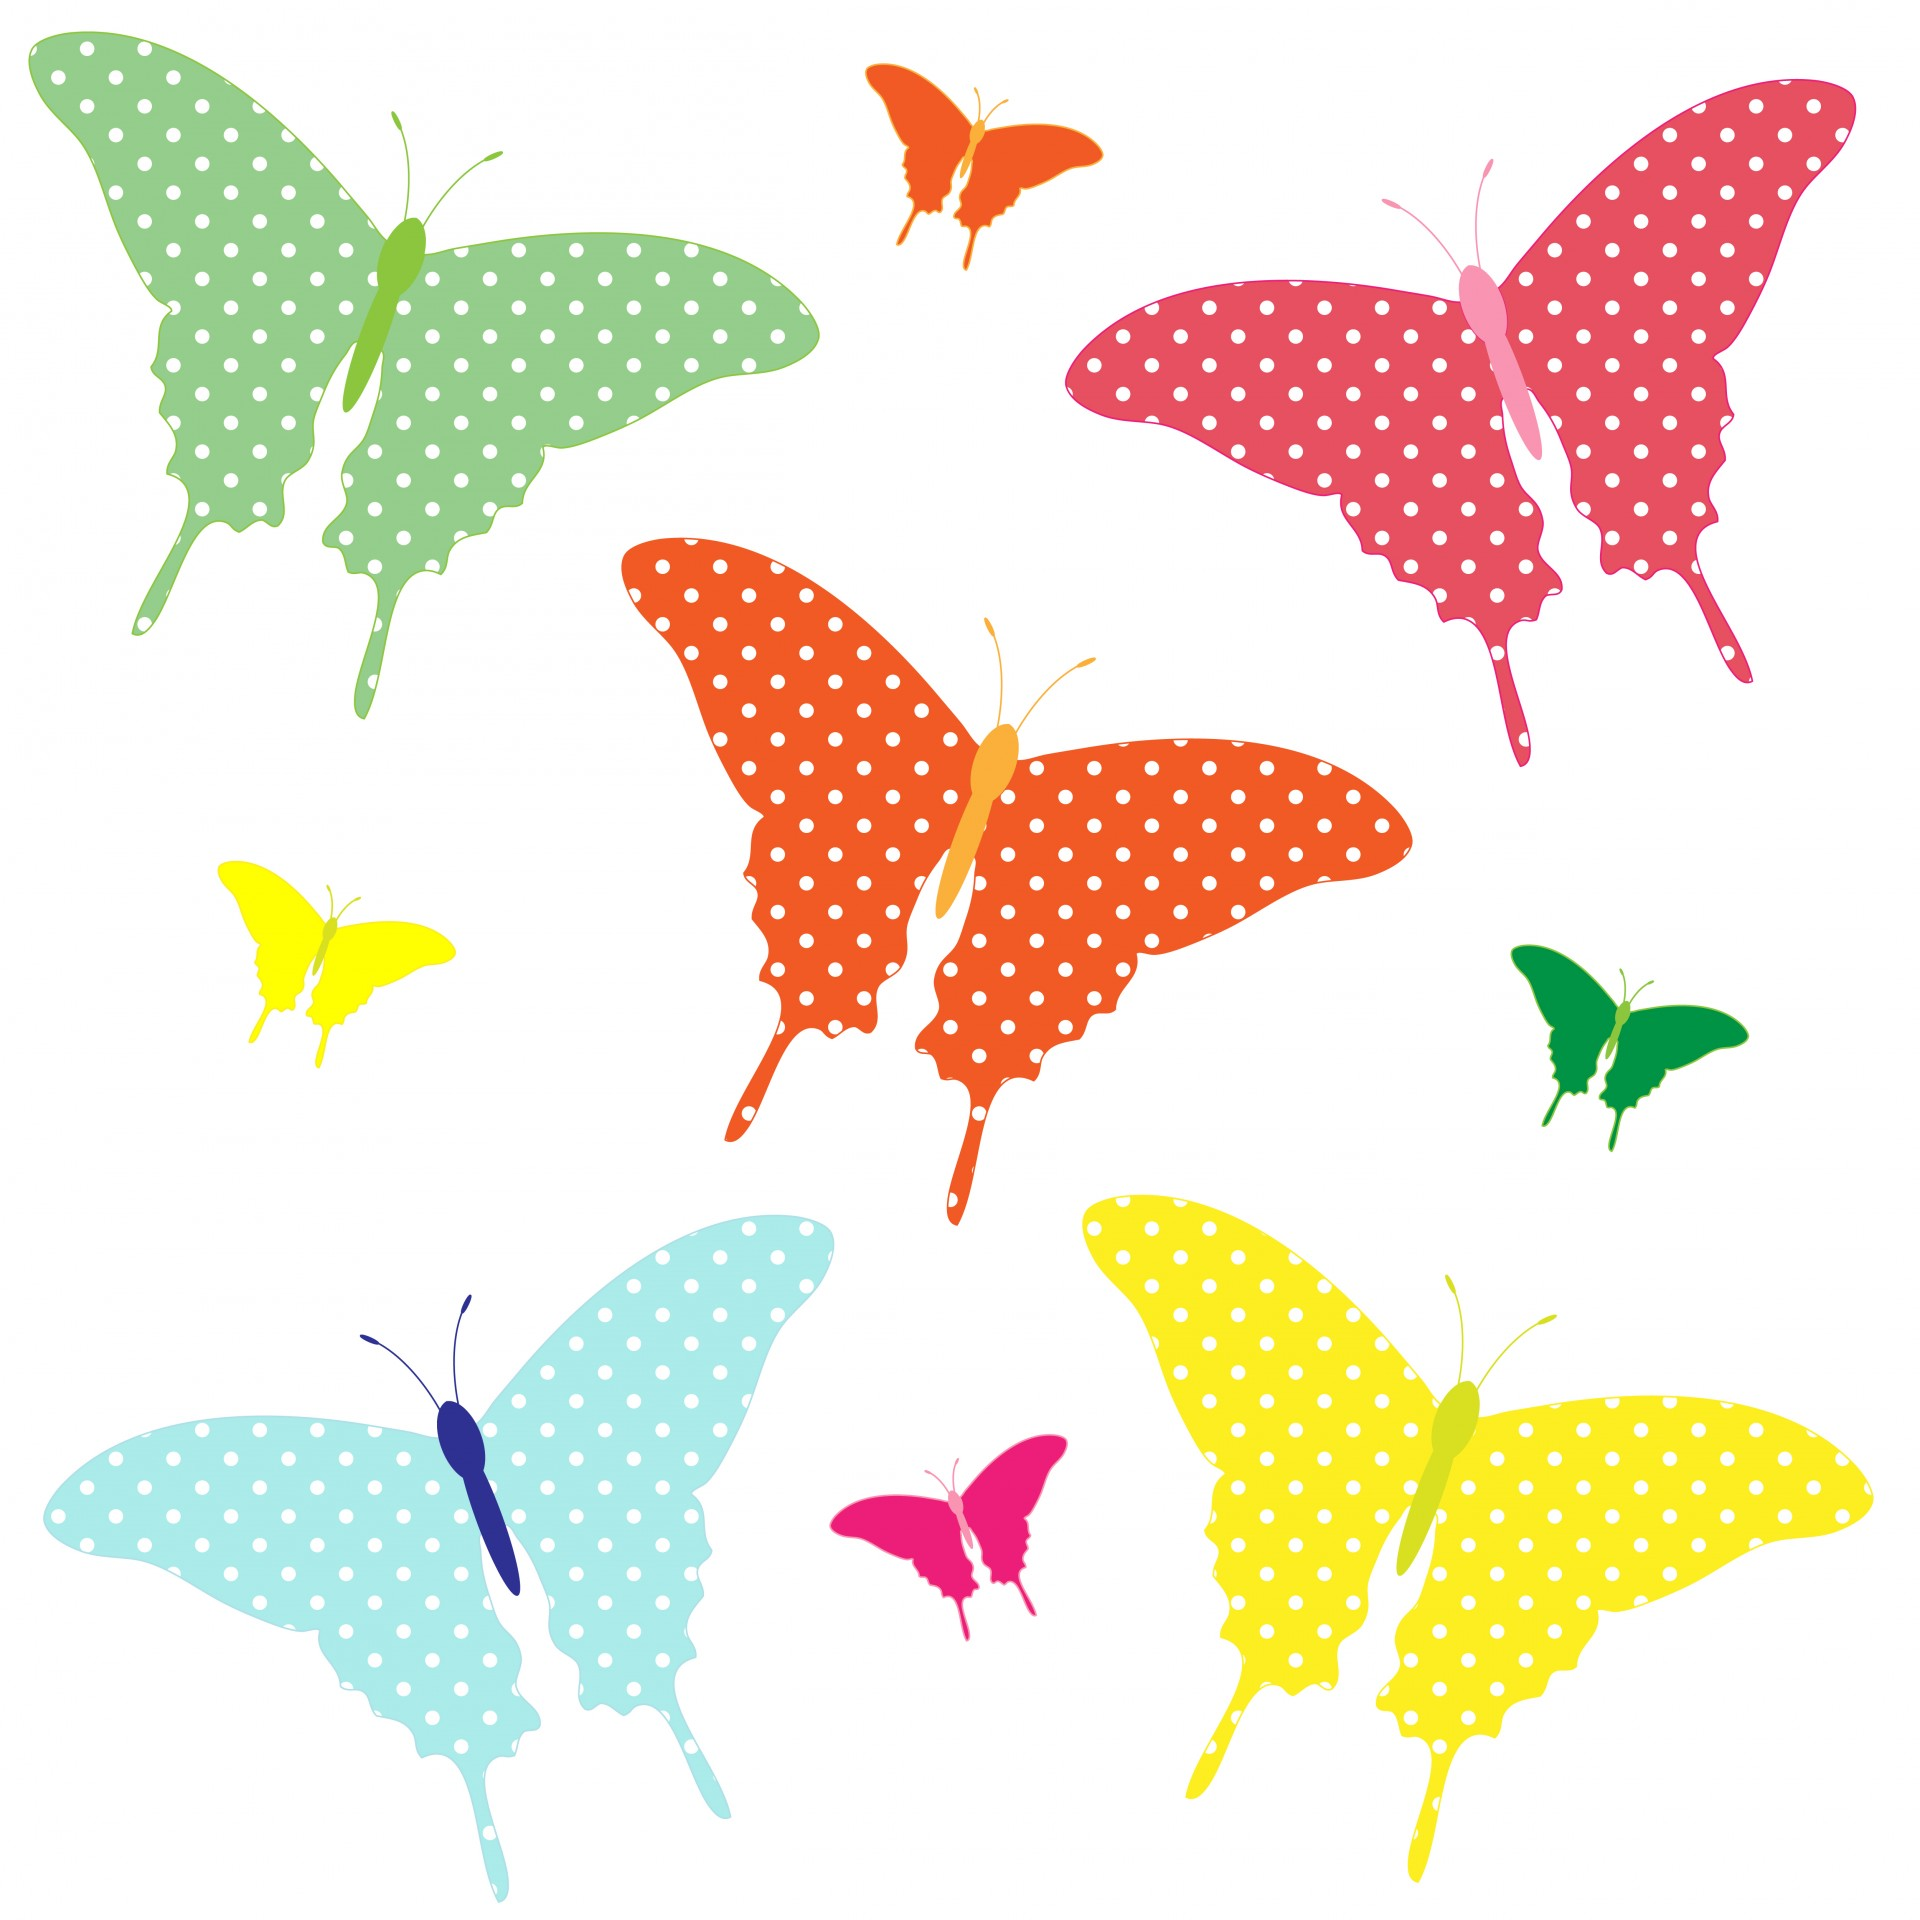 Butterflies clipart polka dot. Colorful free stock photo